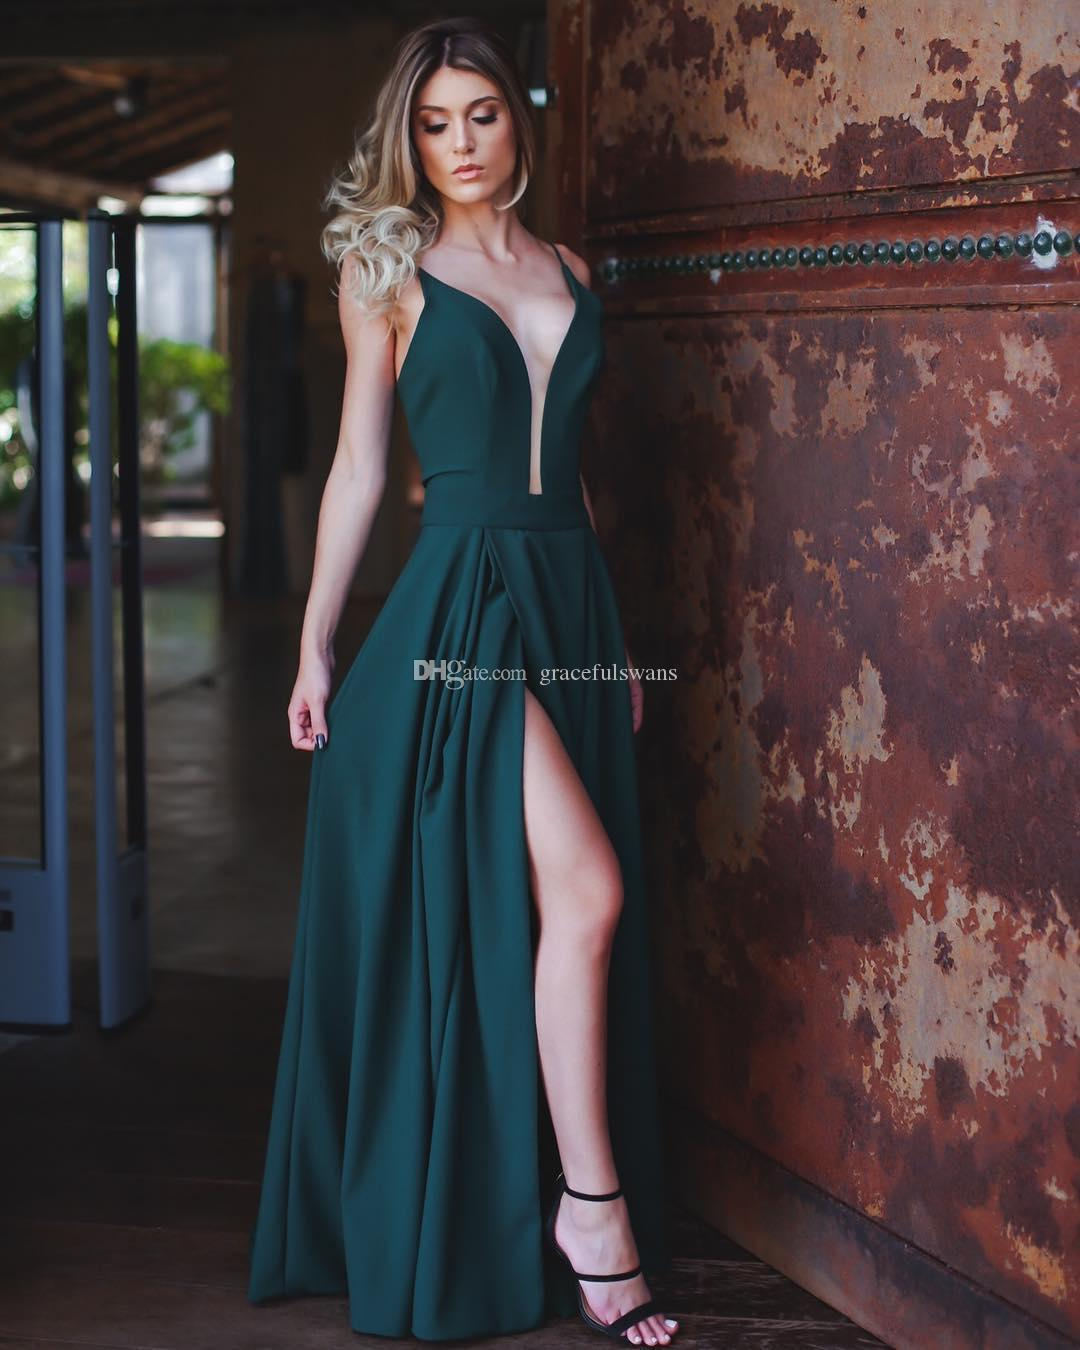 High Leg Slit Sexy Prom Dresses 2018 Deep V Front Formal Dresses For Girls Evening  Party Spaghetti Straps Chiffon Prom Gowns Prom Dress Outlet Prom Dress ... 782c308fdc23